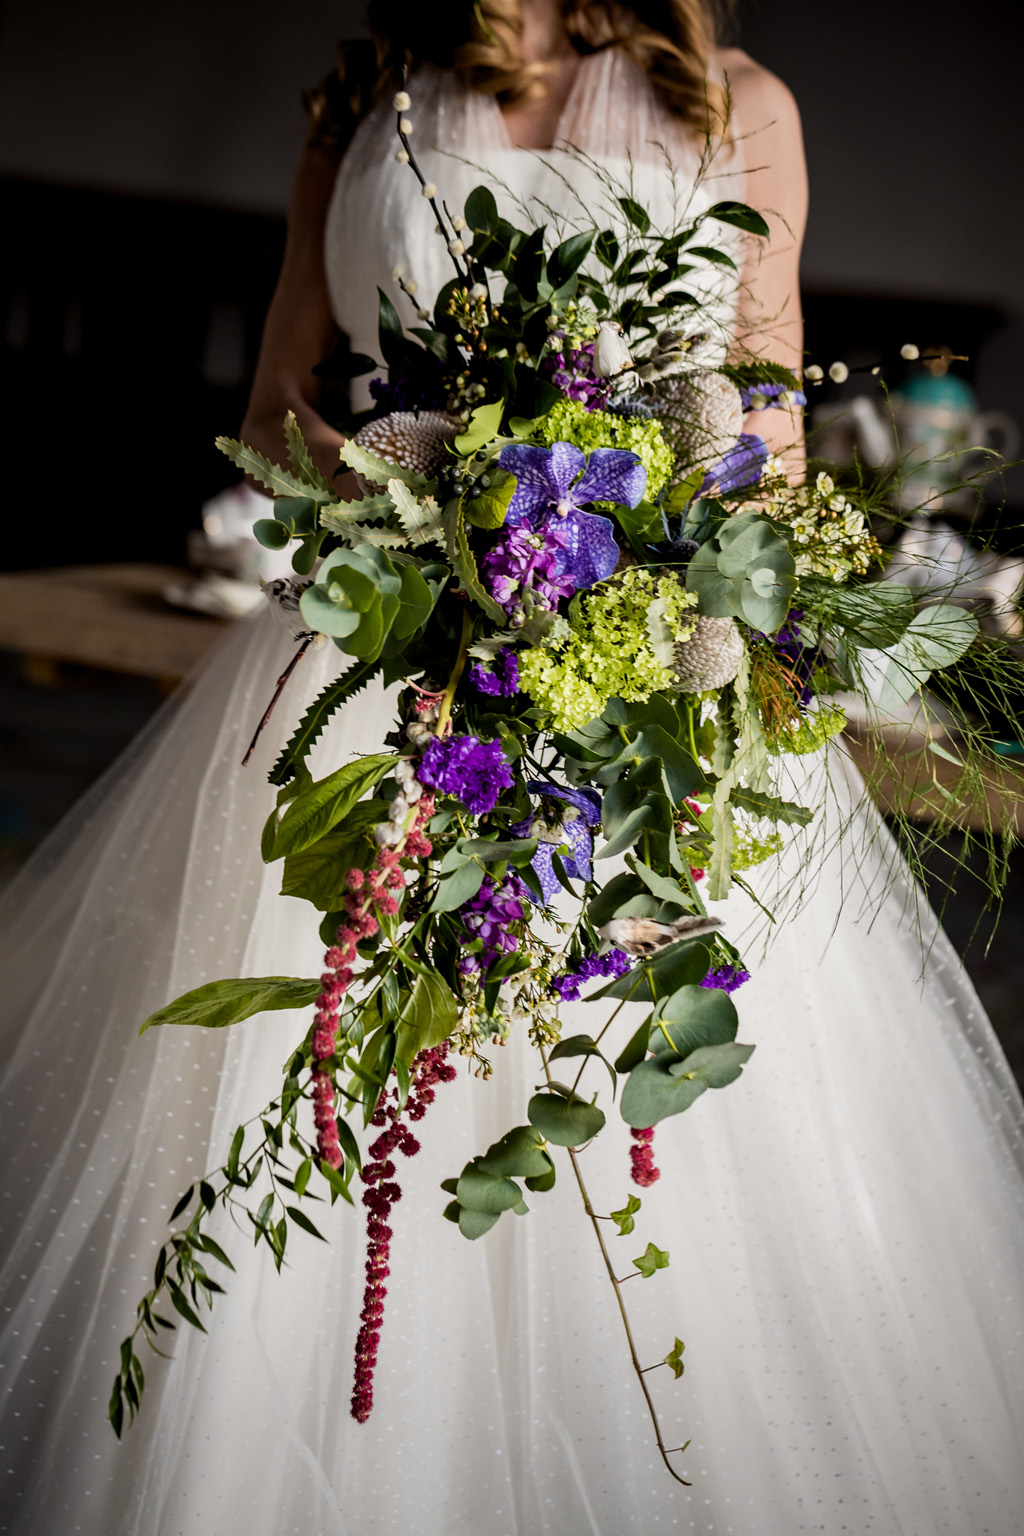 Bride holding trailing bouquet in green, purple with ivy and grasses